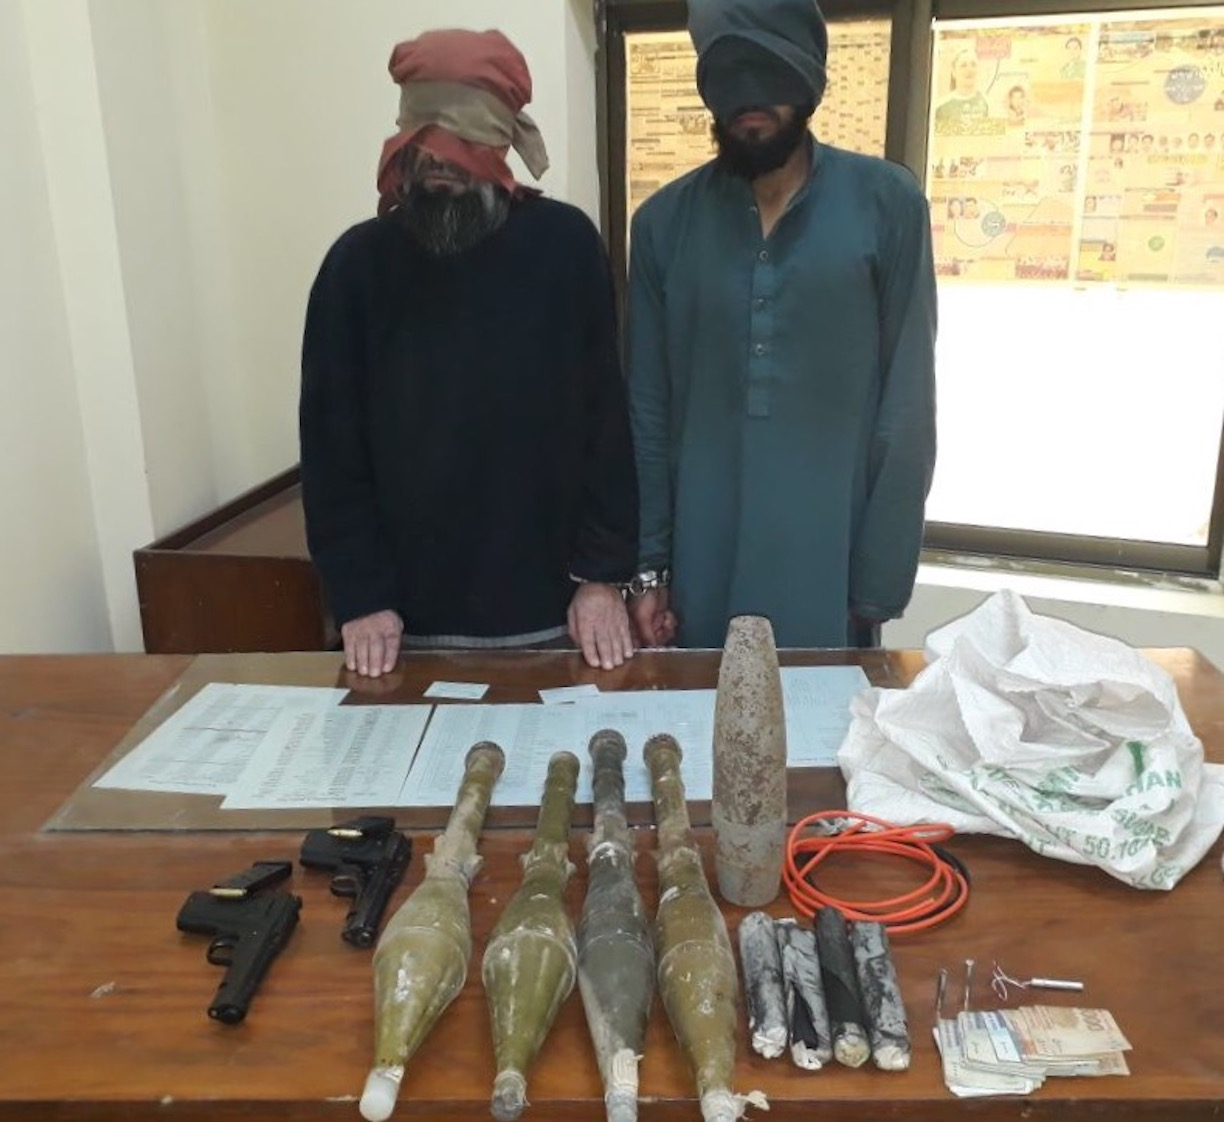 Two militants held by KP Police on December 29, 2017, pose with a number of seized explosives in Peshawar. [KP Police]